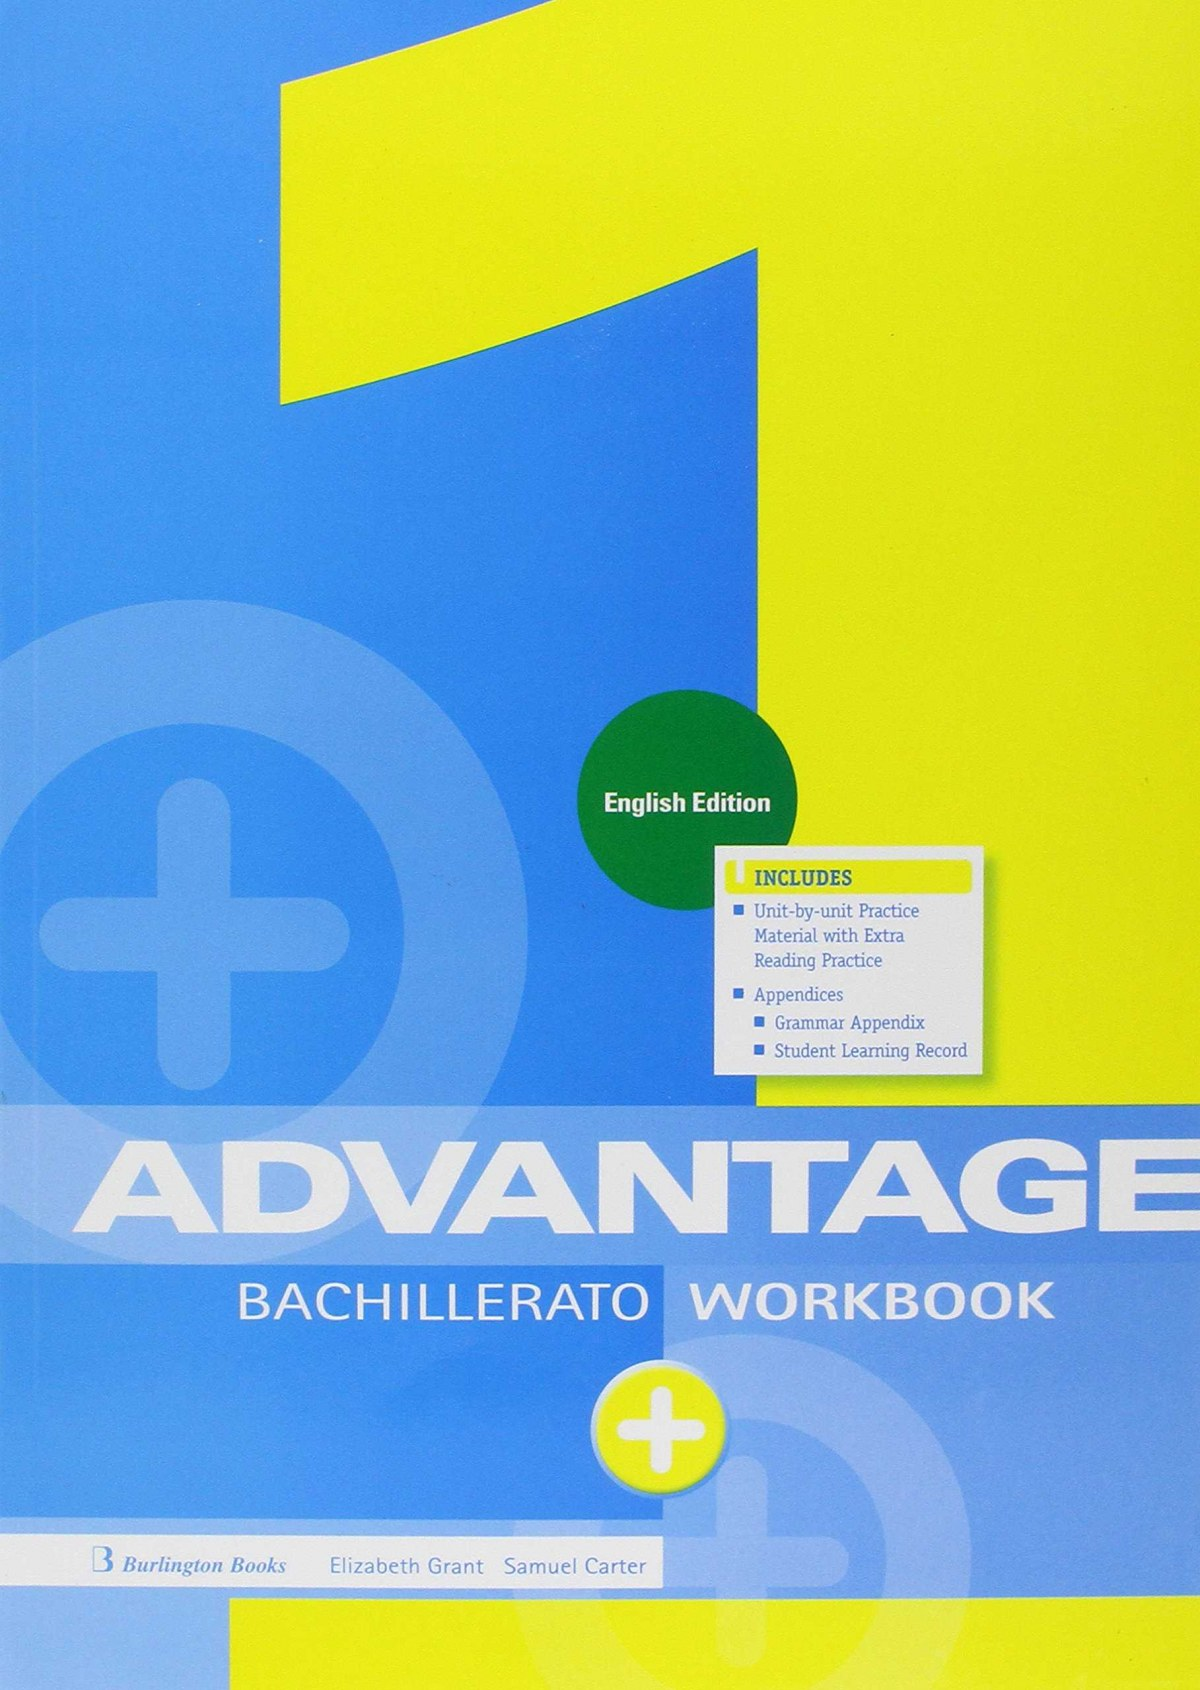 (ING).(17).ADVANTAGE FOR 1ºBACH.(WORKBOOK+EXAM) ENGLISH ED.